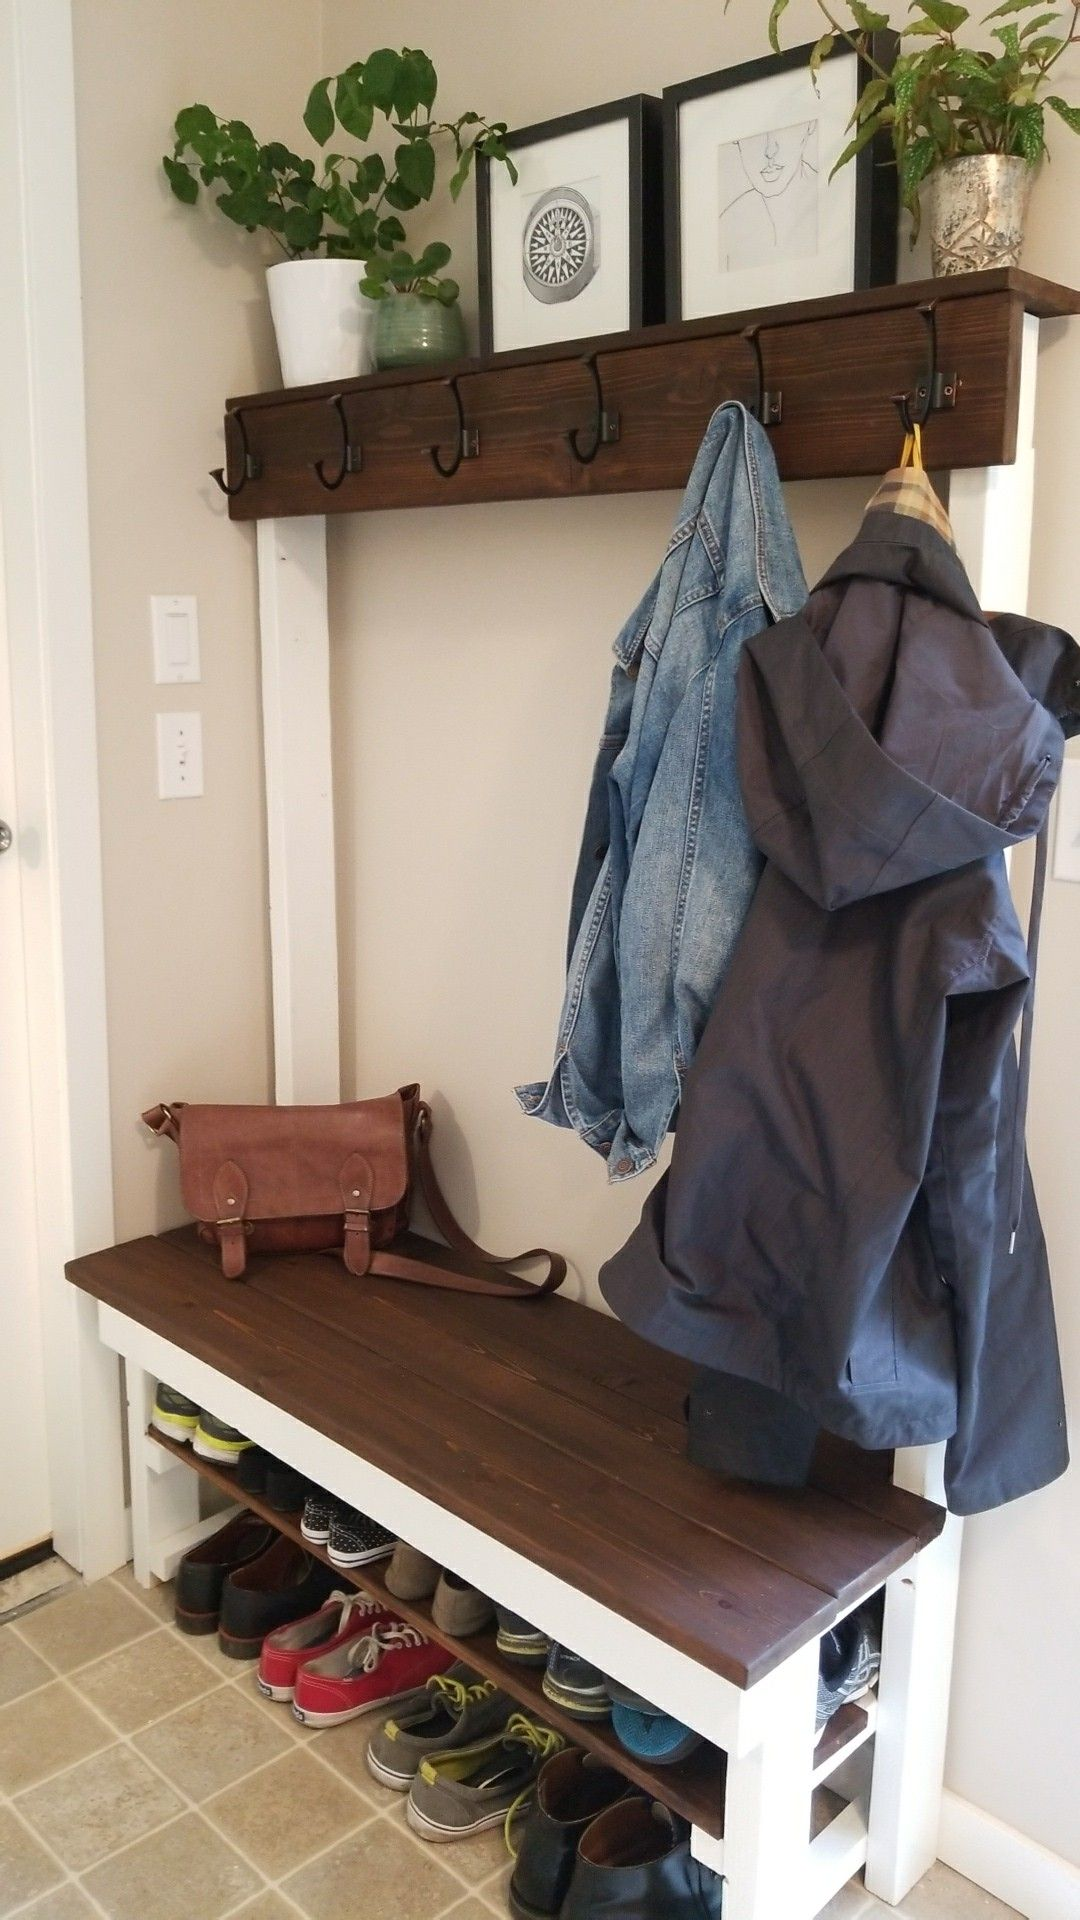 Entry Way Shoeshelf Coat Rack Bench Diy With Some 2x4 And Cedar Fence Boards Entryway Bench Storage Shoe Storage Bench Entryway Diy Entryway Bench